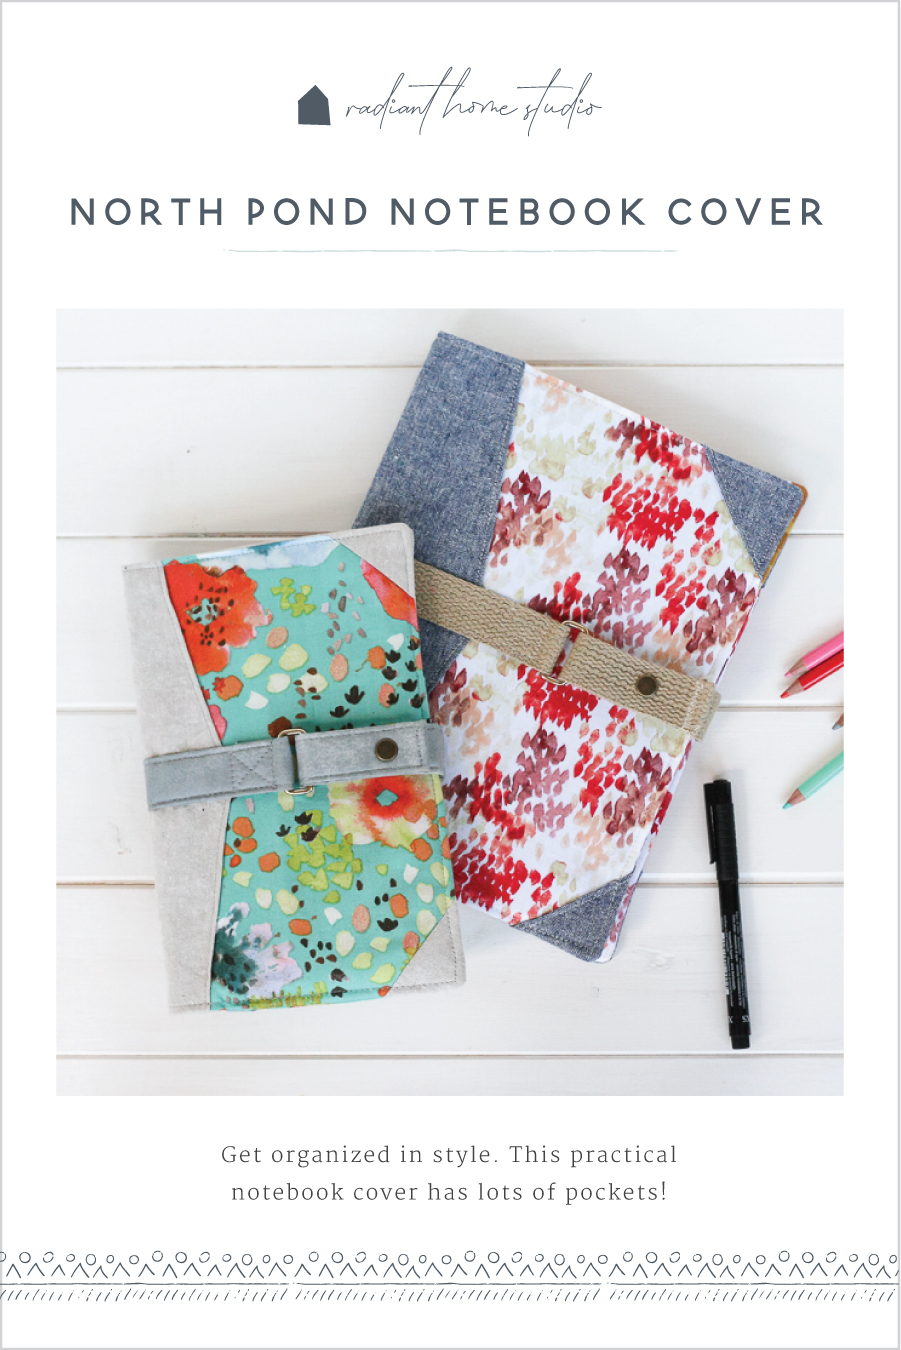 North Pond Notebook Cover | Radiant Home Studio